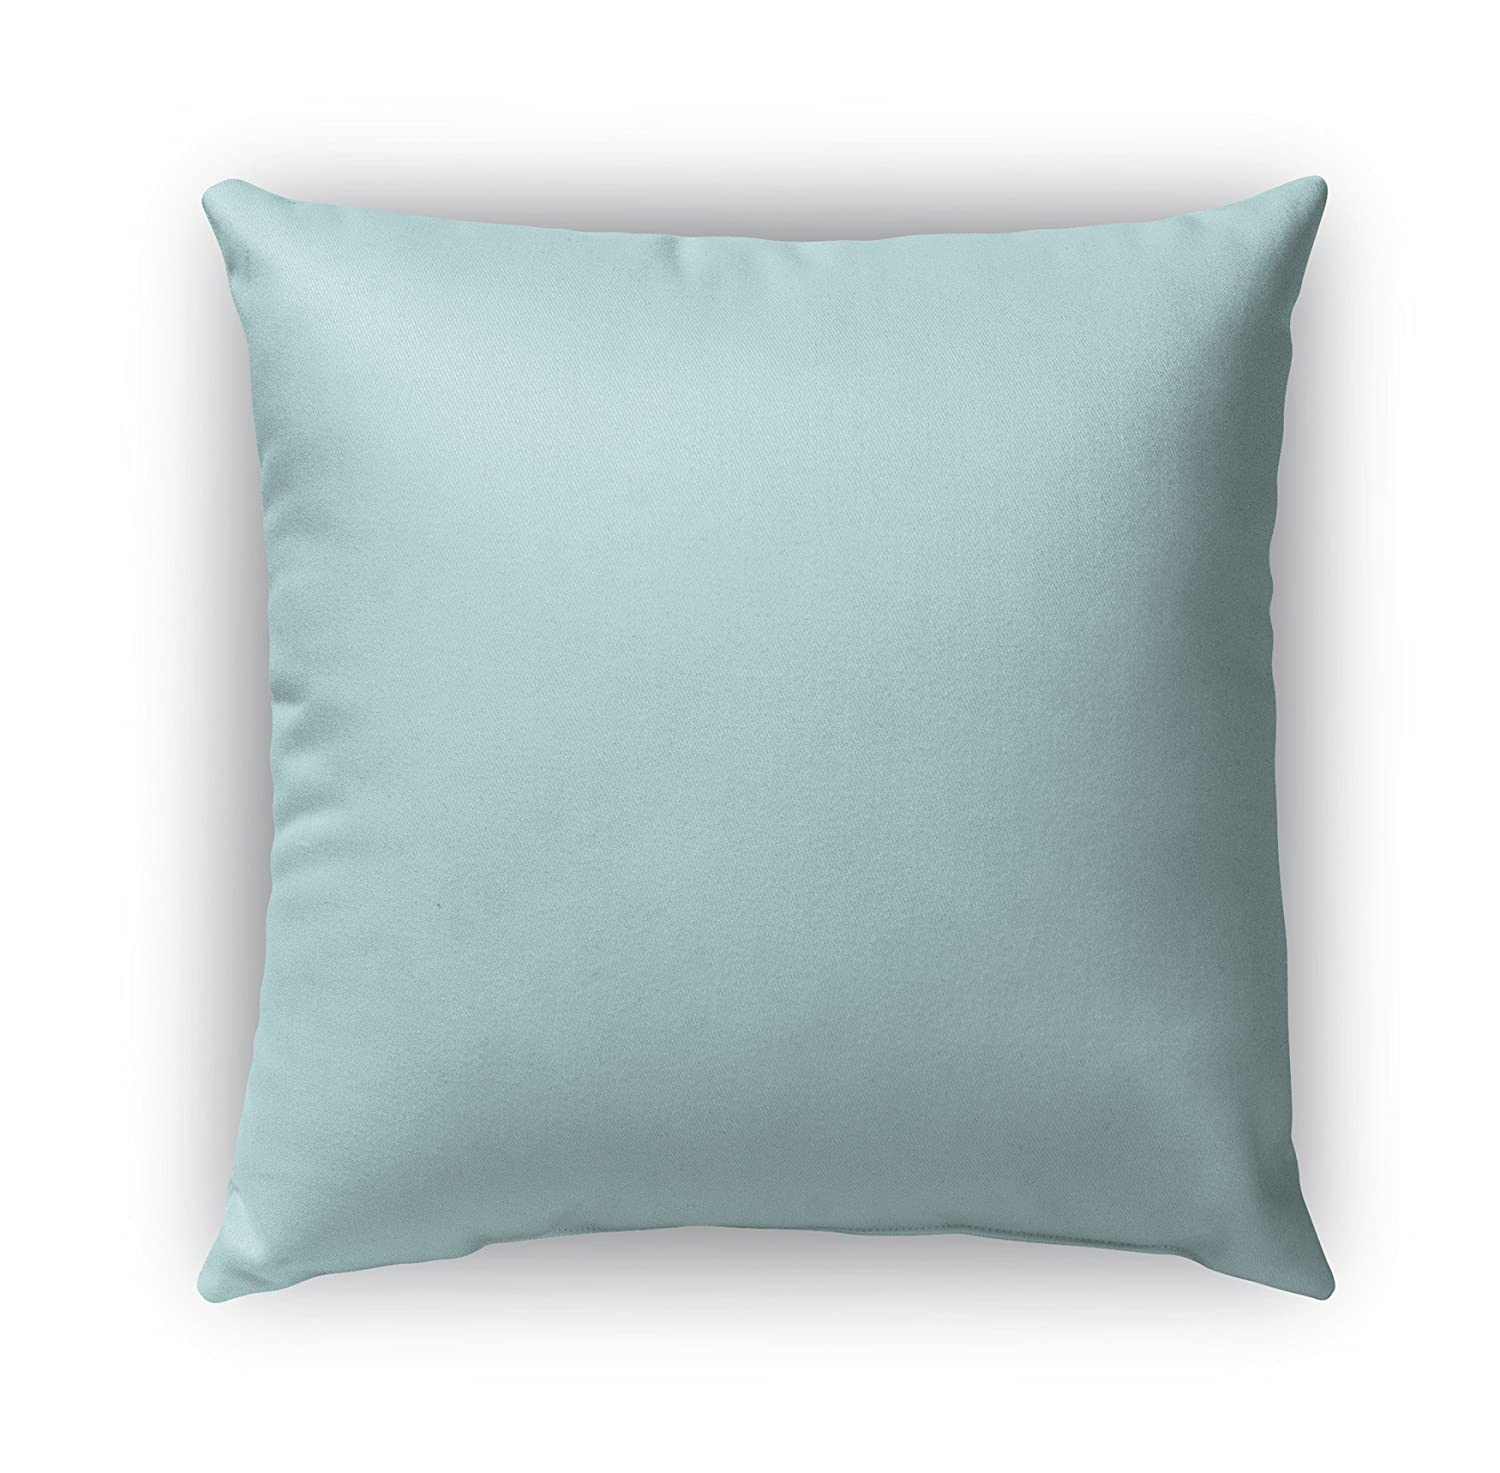 Size: 26X26X6 - MGTAVC2006OP26 - BOHEMIA Collection KAVKA Designs Mojave Indoor-Outdoor Pillow, Ivory//Turquoise//Brown